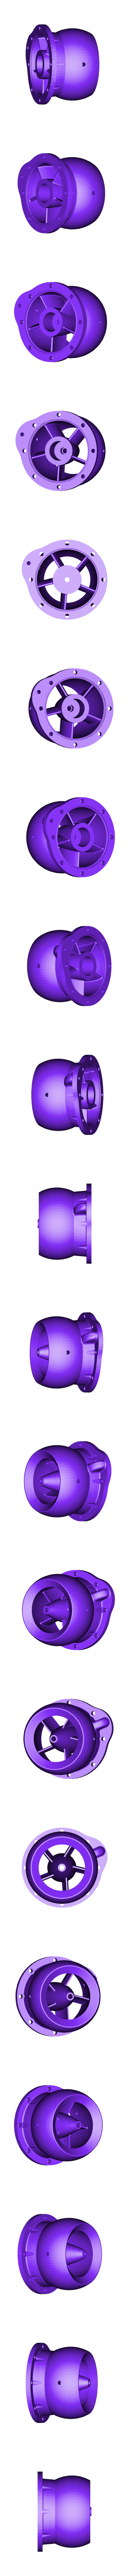 diffusor with integrated cooling new nozzle.STL Download STL file Water Jet propulsion unit • 3D print design, toto44